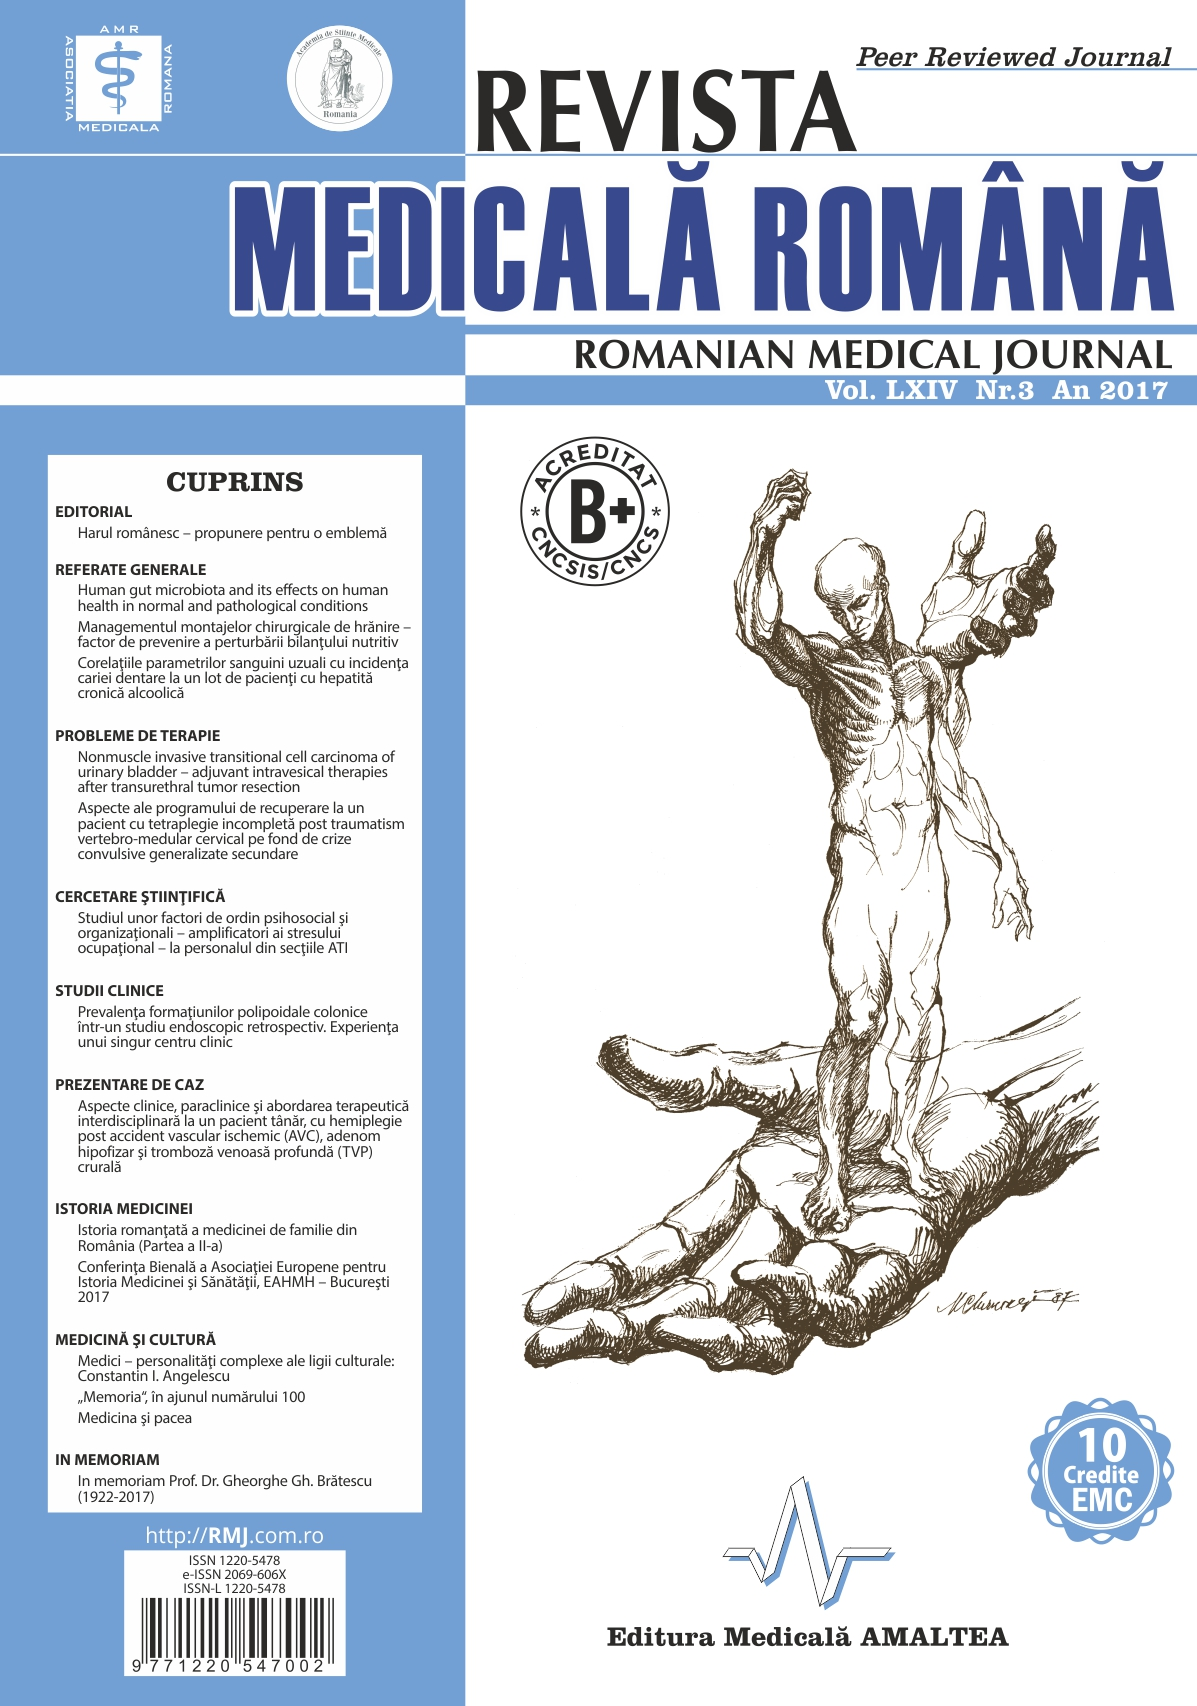 REVISTA MEDICALA ROMANA - Romanian Medical Journal, Vol. LXIV, Nr. 3, An 2017